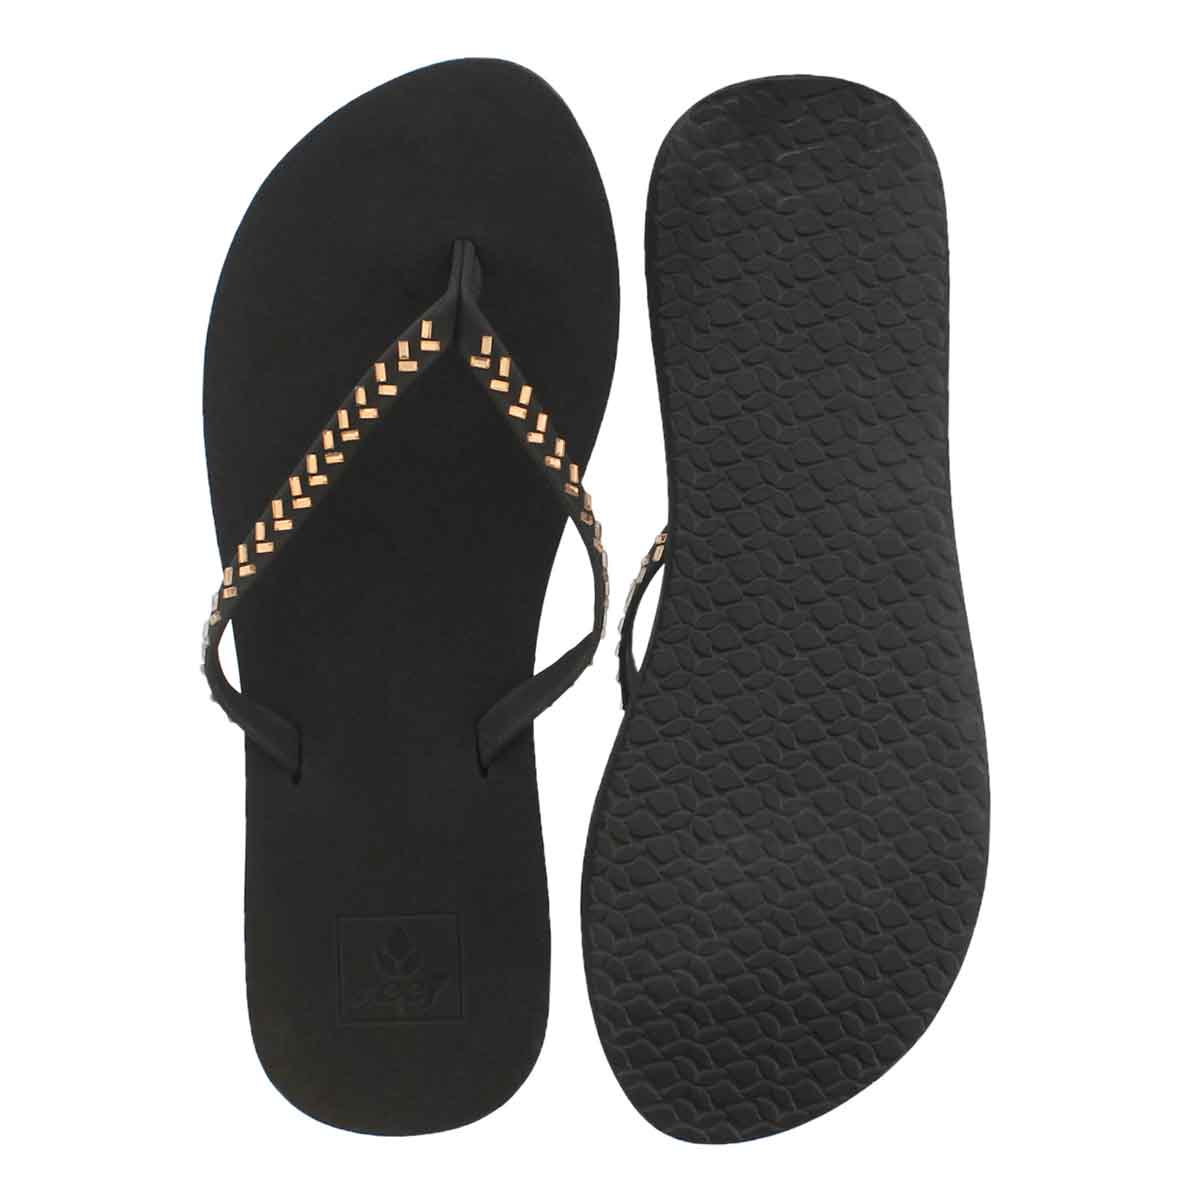 Lds Bliss Embellish blk/brnz flip flop